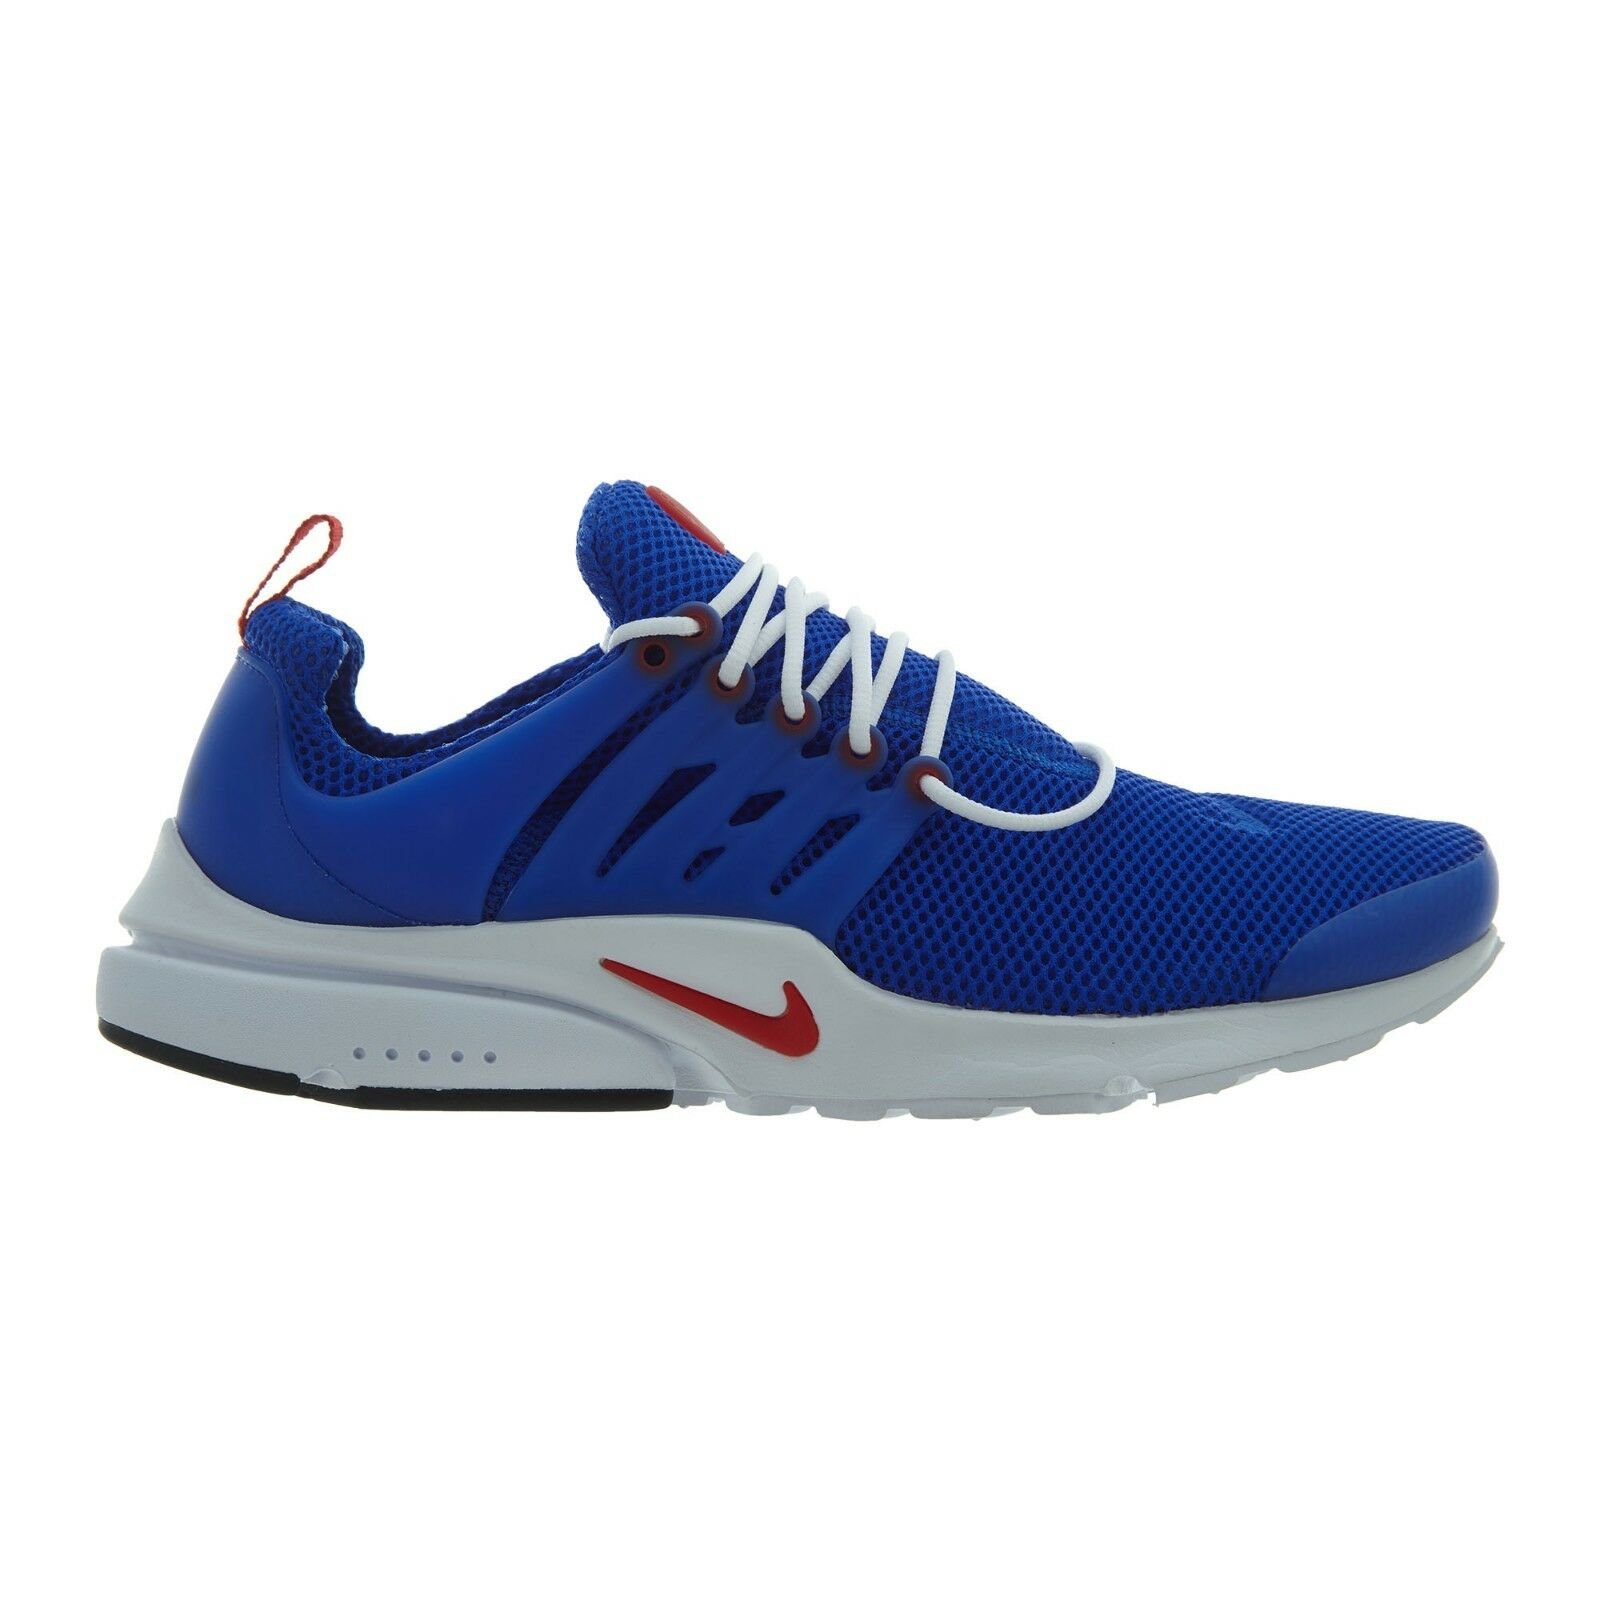 Nike Air Presto Essential Mens 848187-408 Racer Blue Red Running Shoes Comfortable Seasonal price cuts, discount benefits